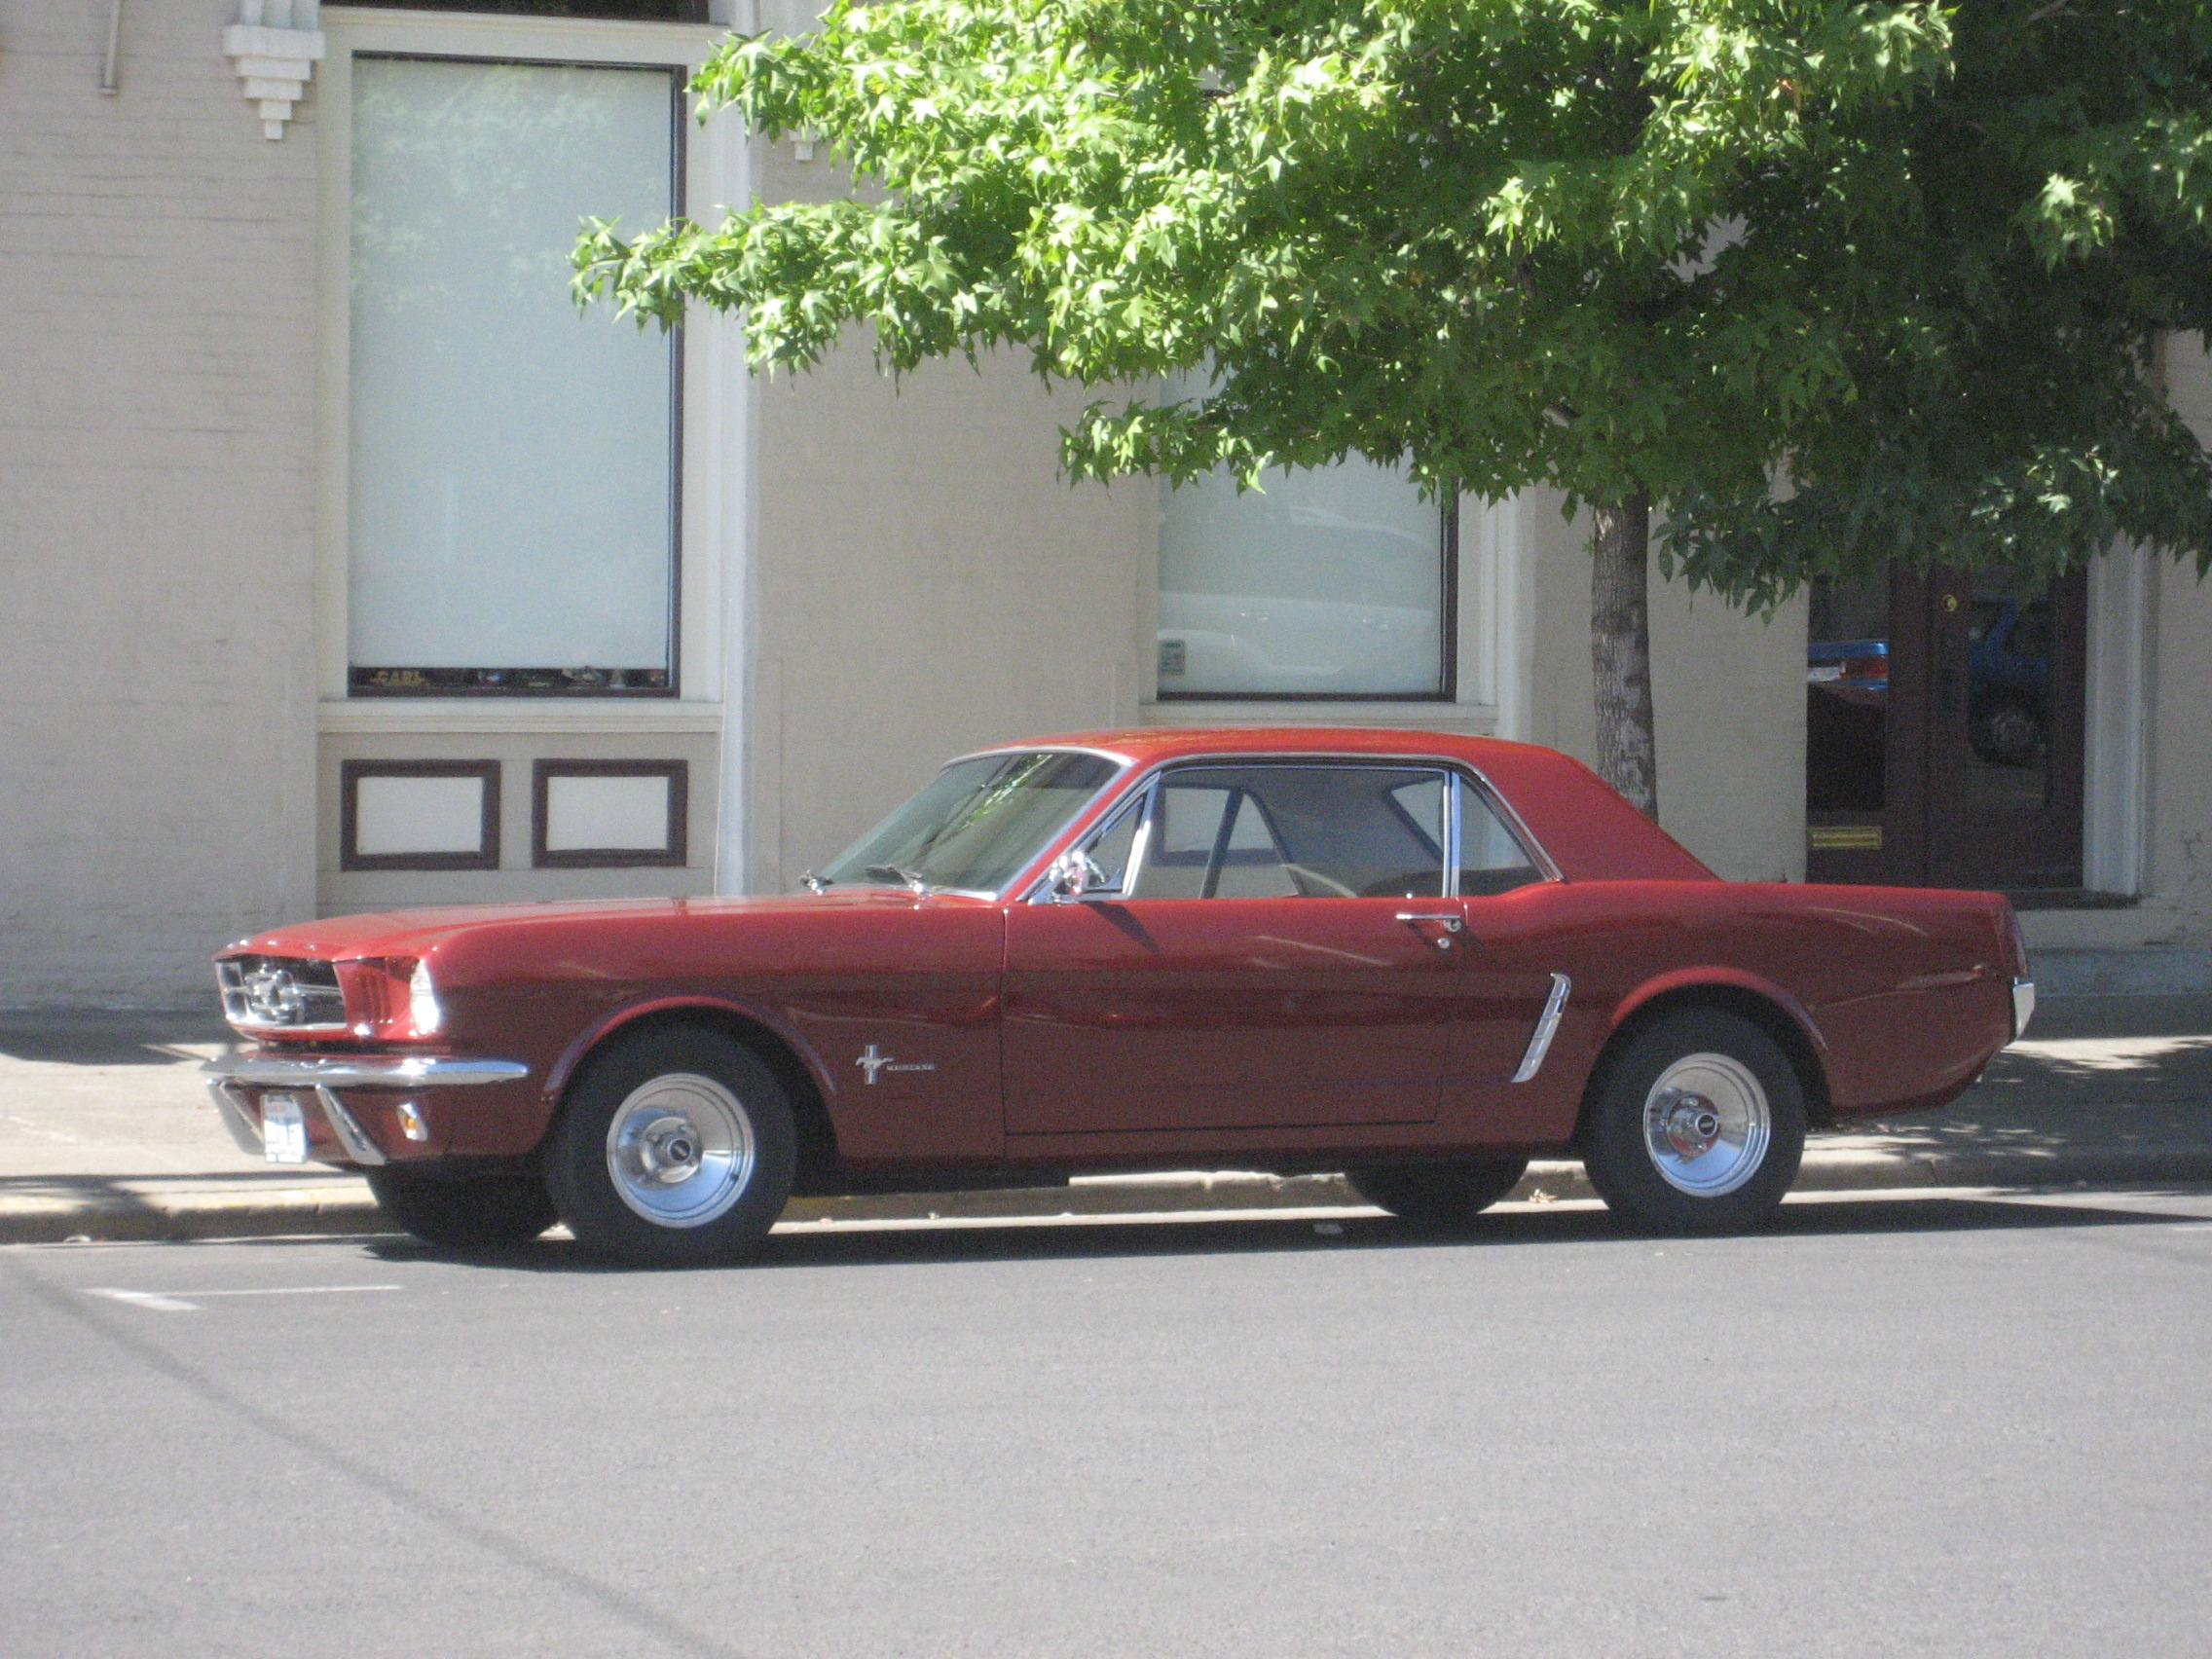 For Jody -- a 1965 Mustang